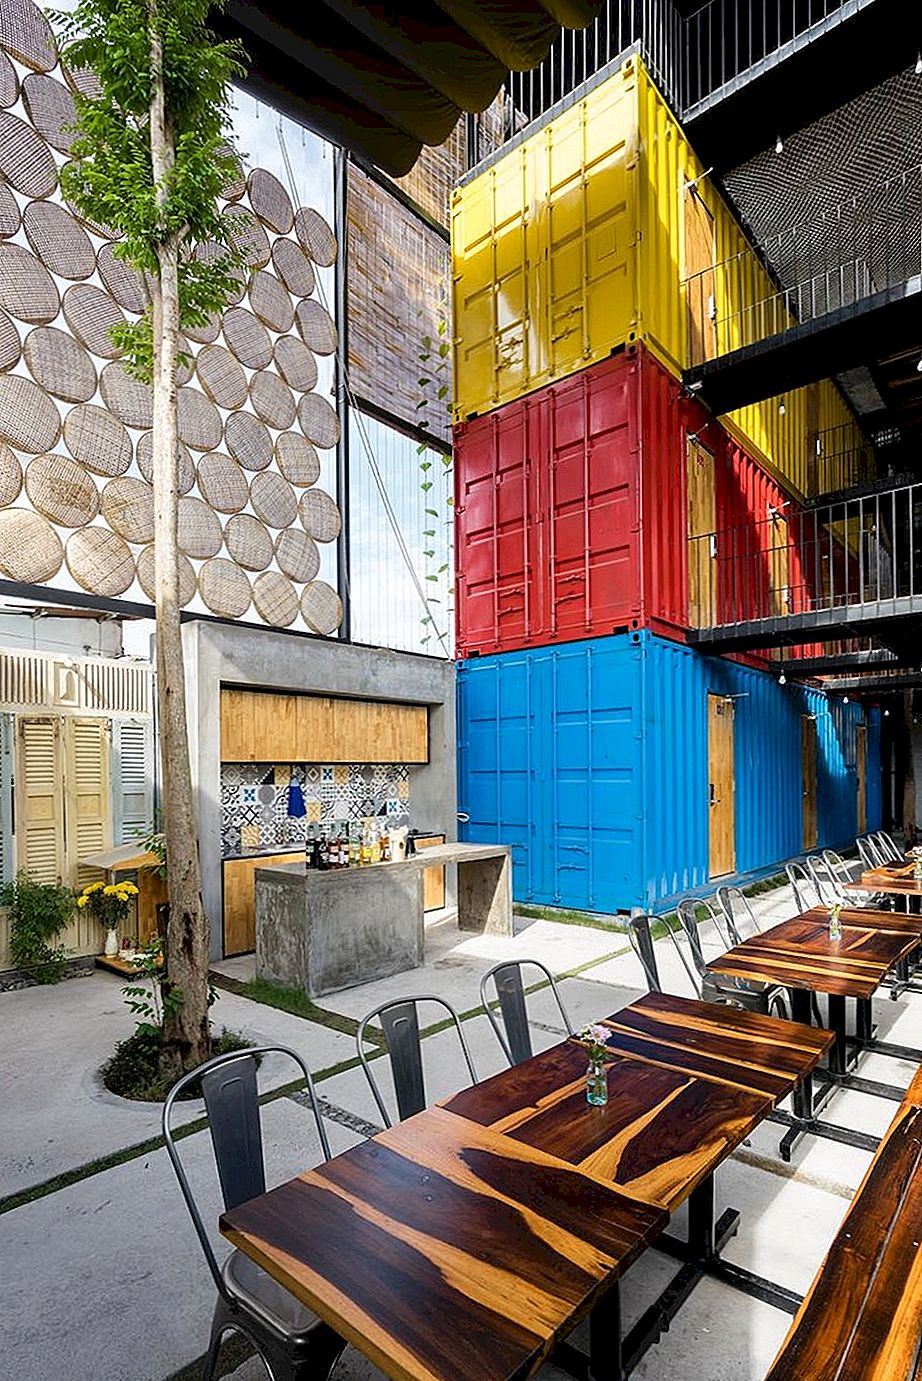 Hotel za backpackers s skupnimi spalnicami Inside Shipping Containers